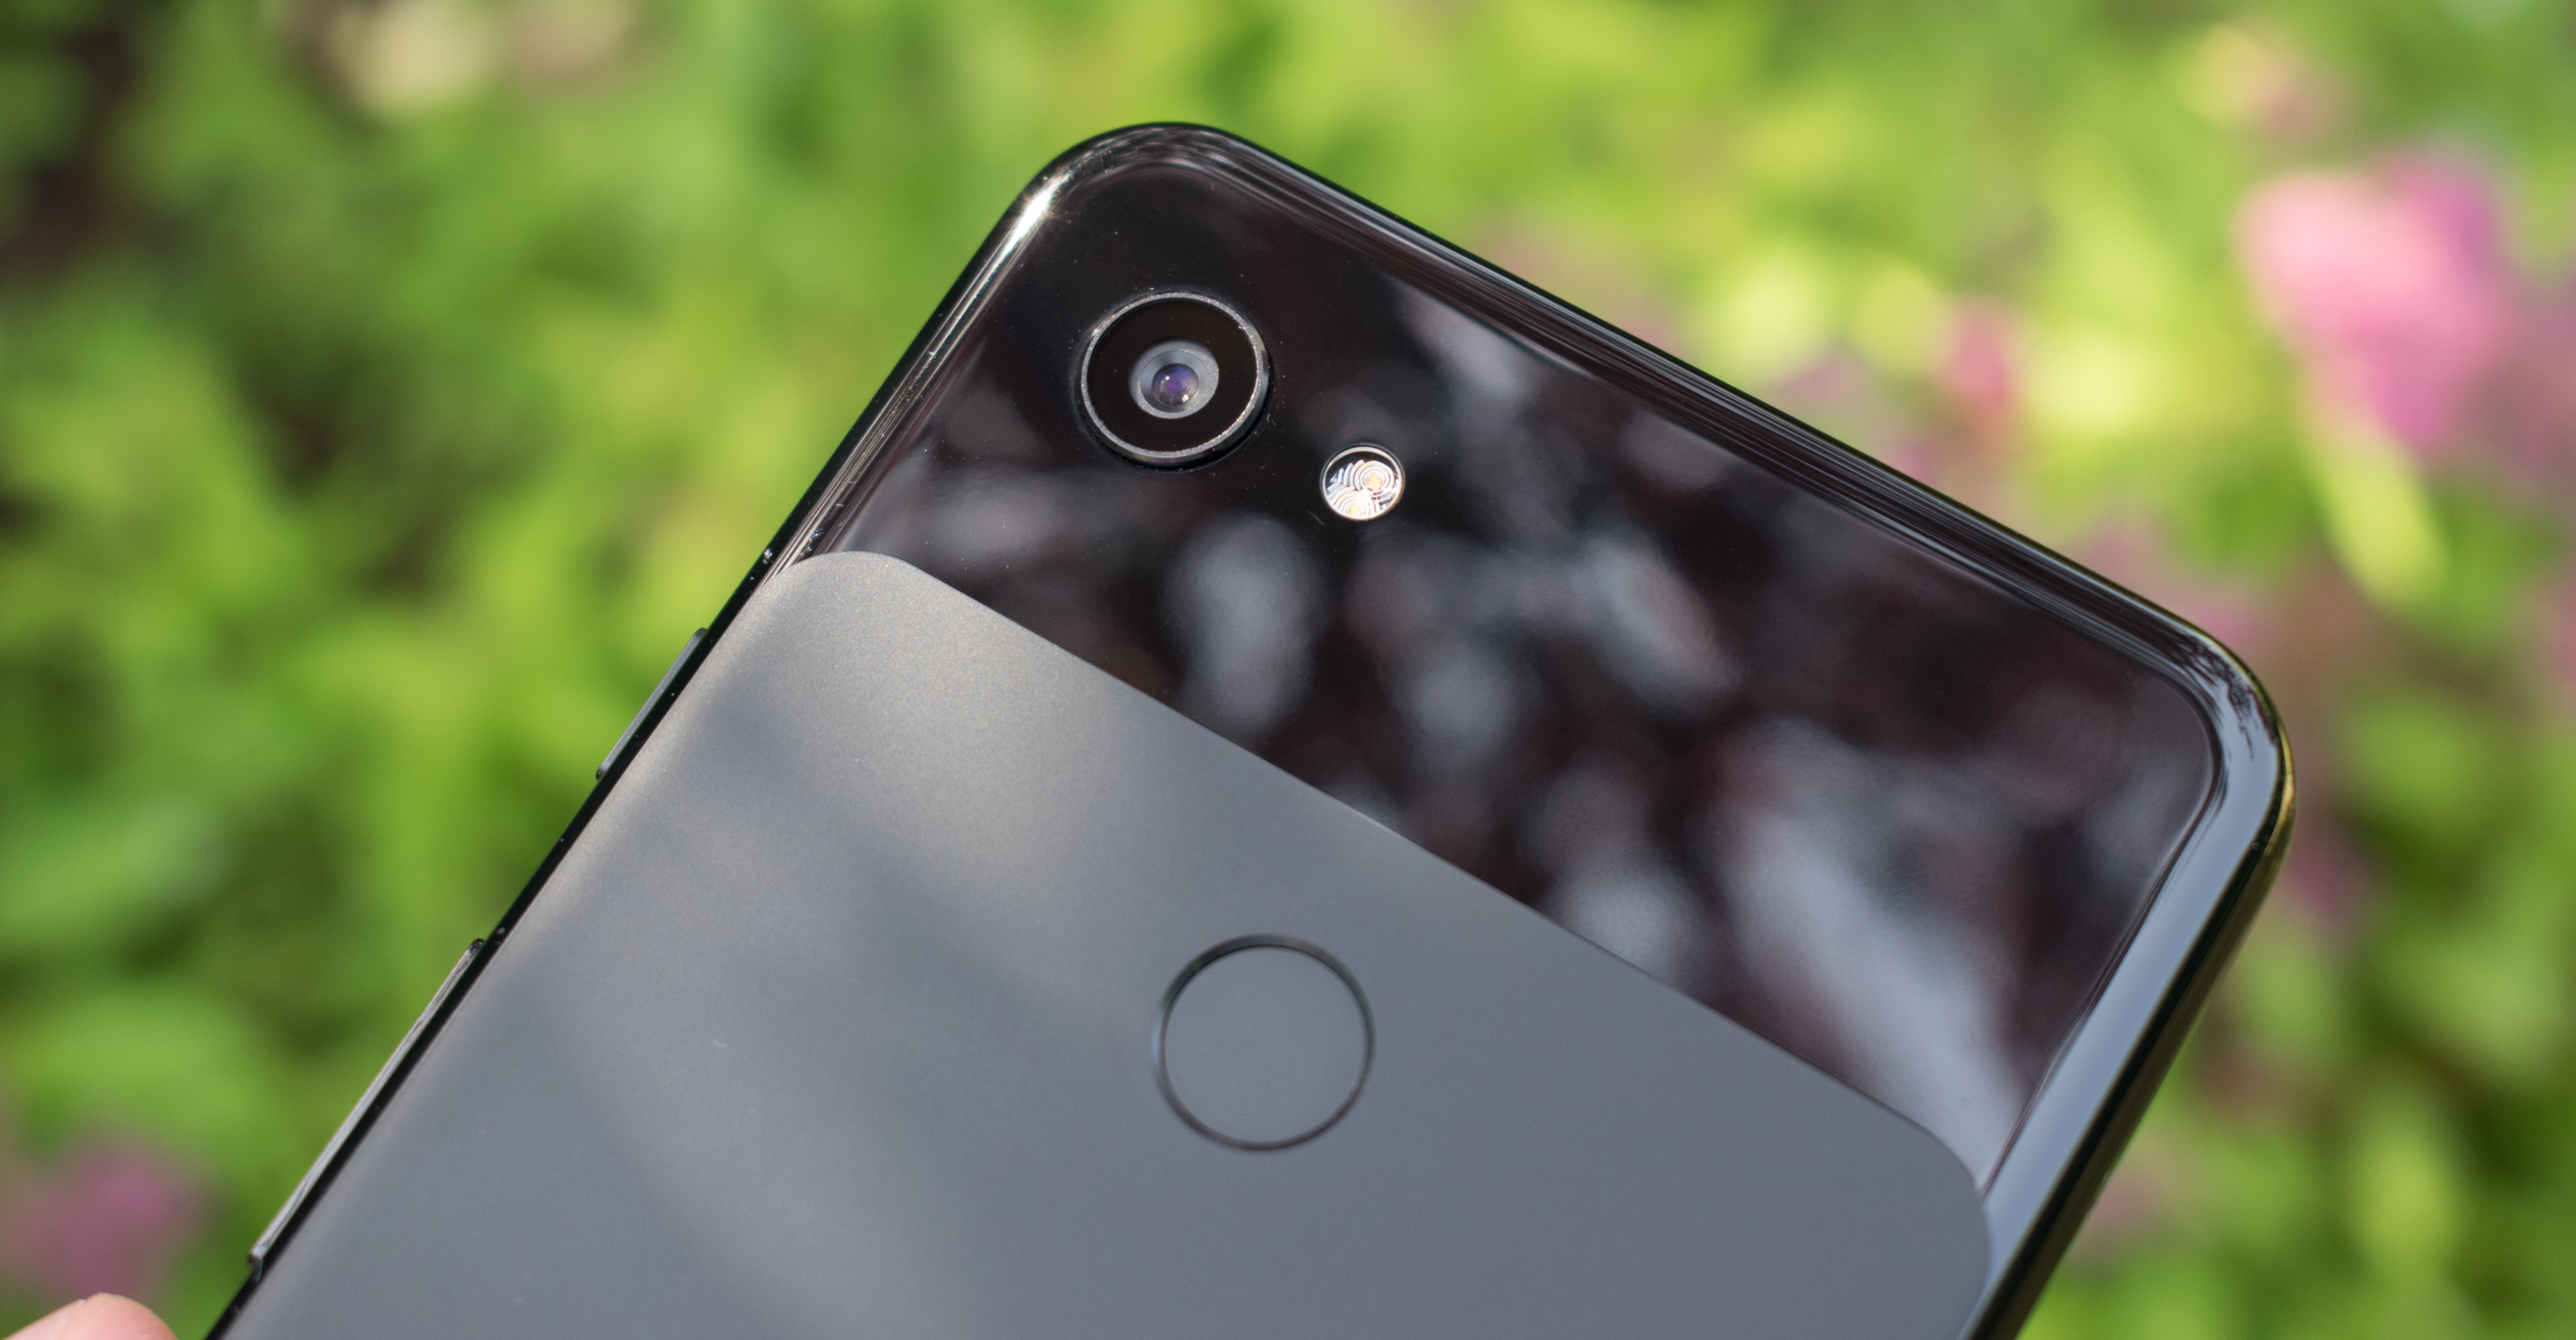 Camera - Daylight Evaluation - The Google Pixel 3a XL Review